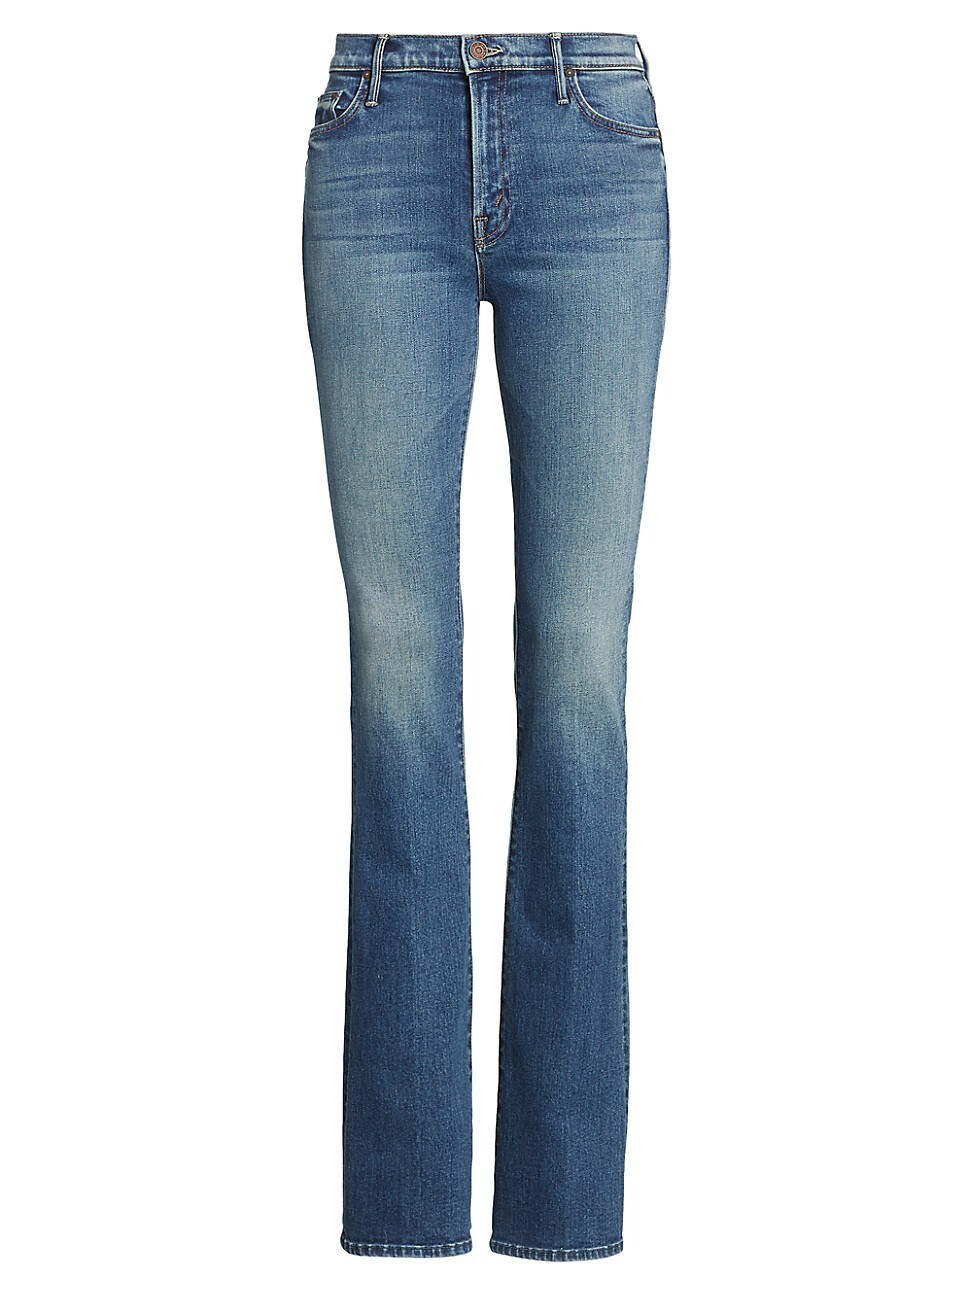 MOTHER WOMEN'S THE INSIDER BOOTCUT JEANS